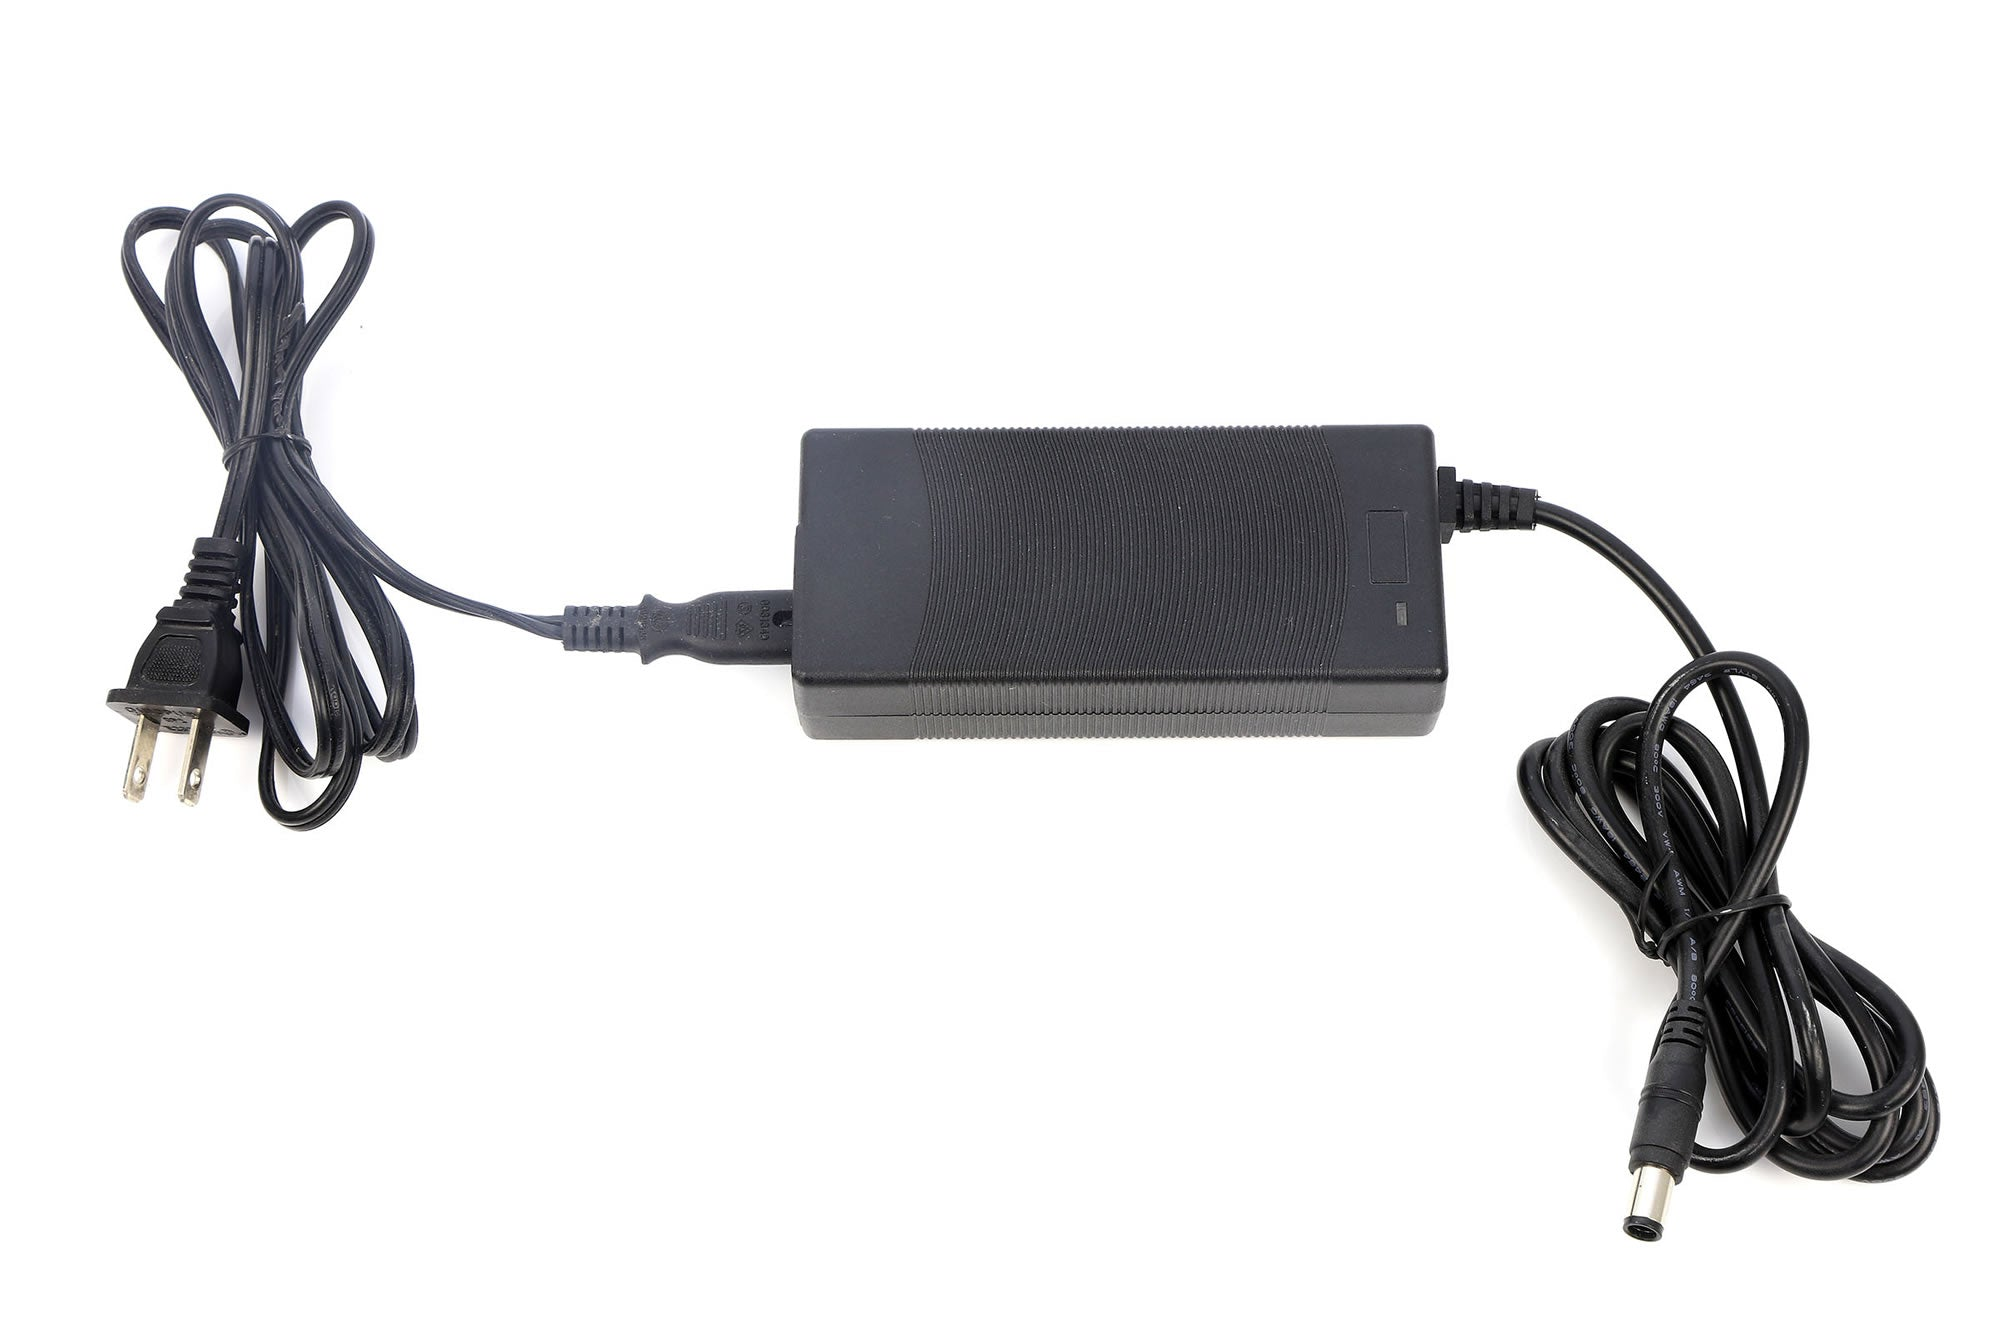 Medistrom AC Power Adapter for Pilot-24 Lite